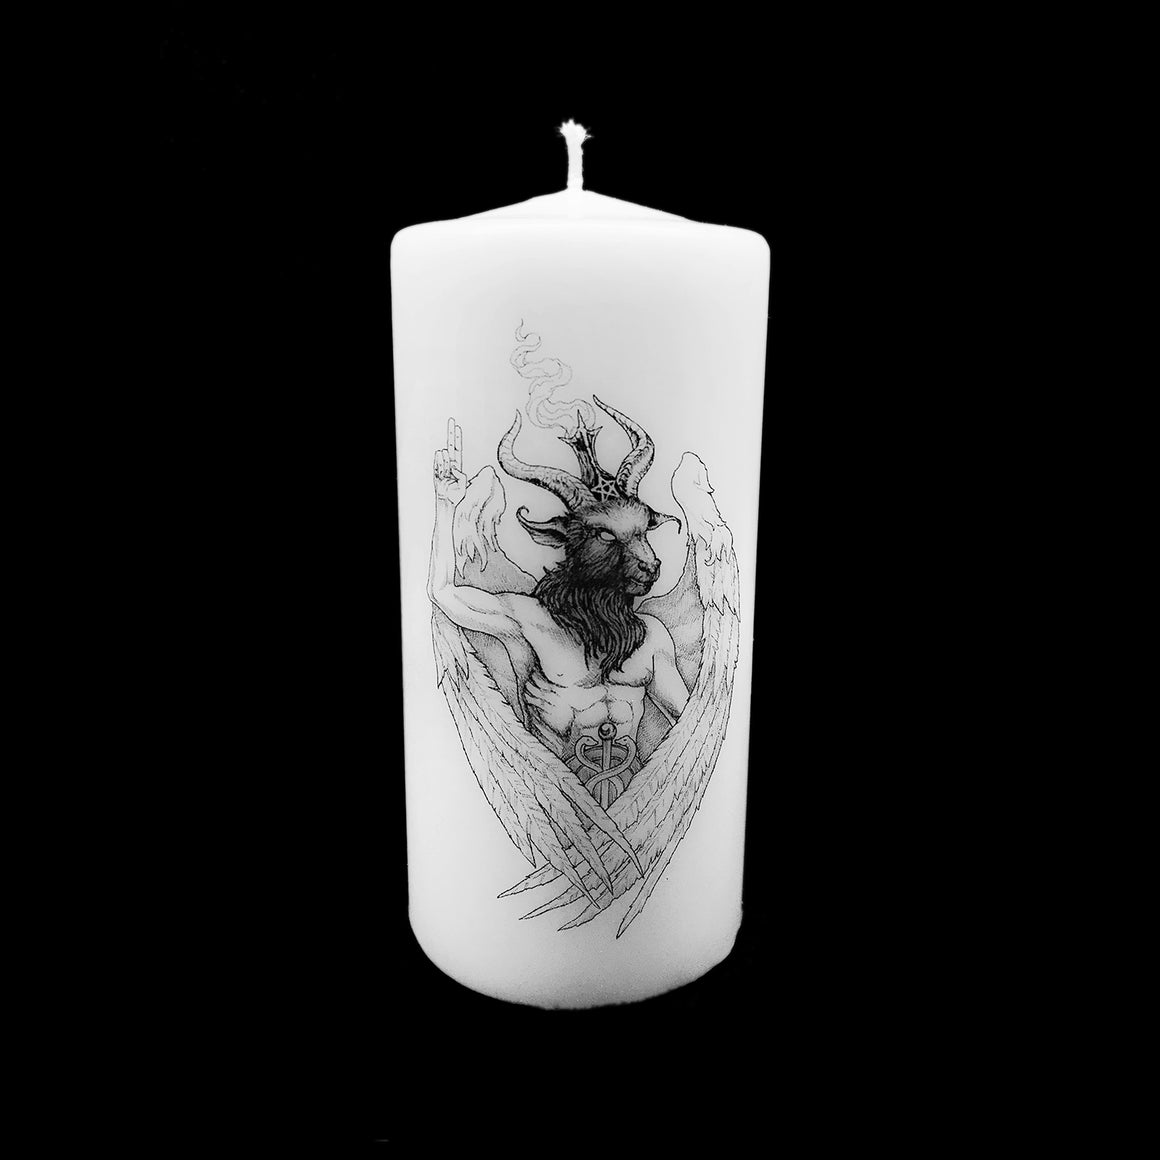 Baphomet Pillar Candle designed by Dellamorte & Co for TST